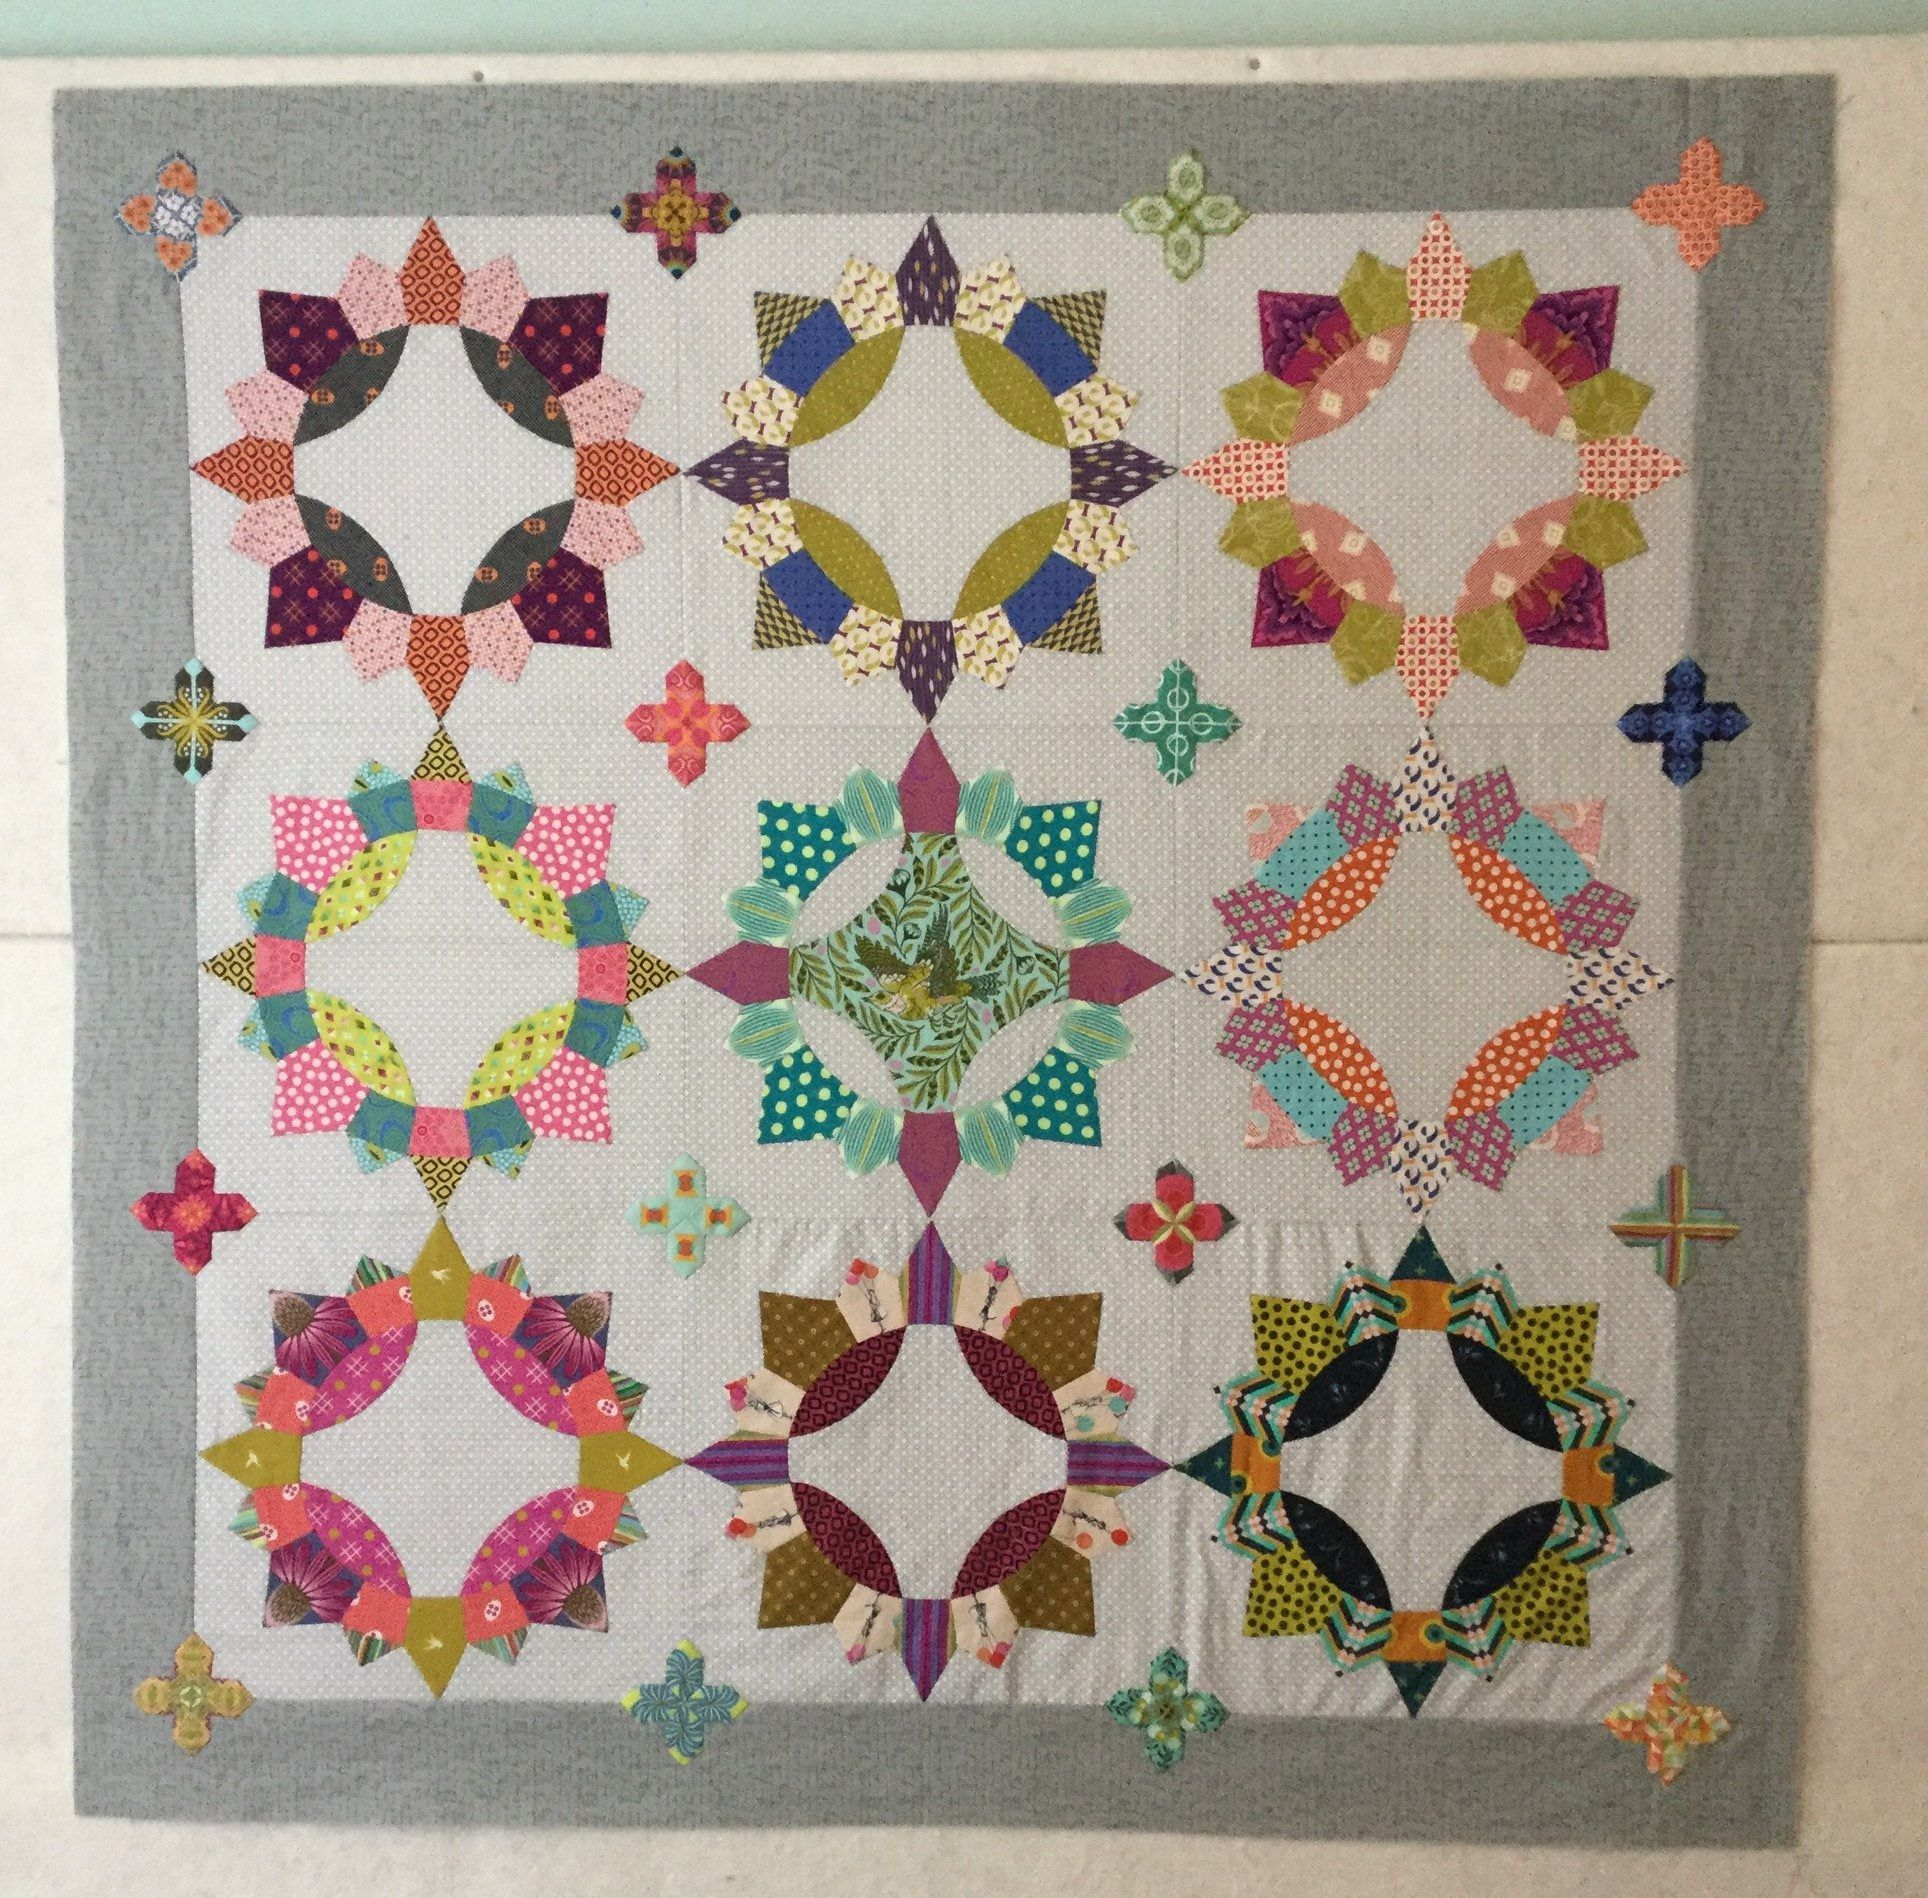 Pin by Maryn Designs on A Quilt It Pinterest